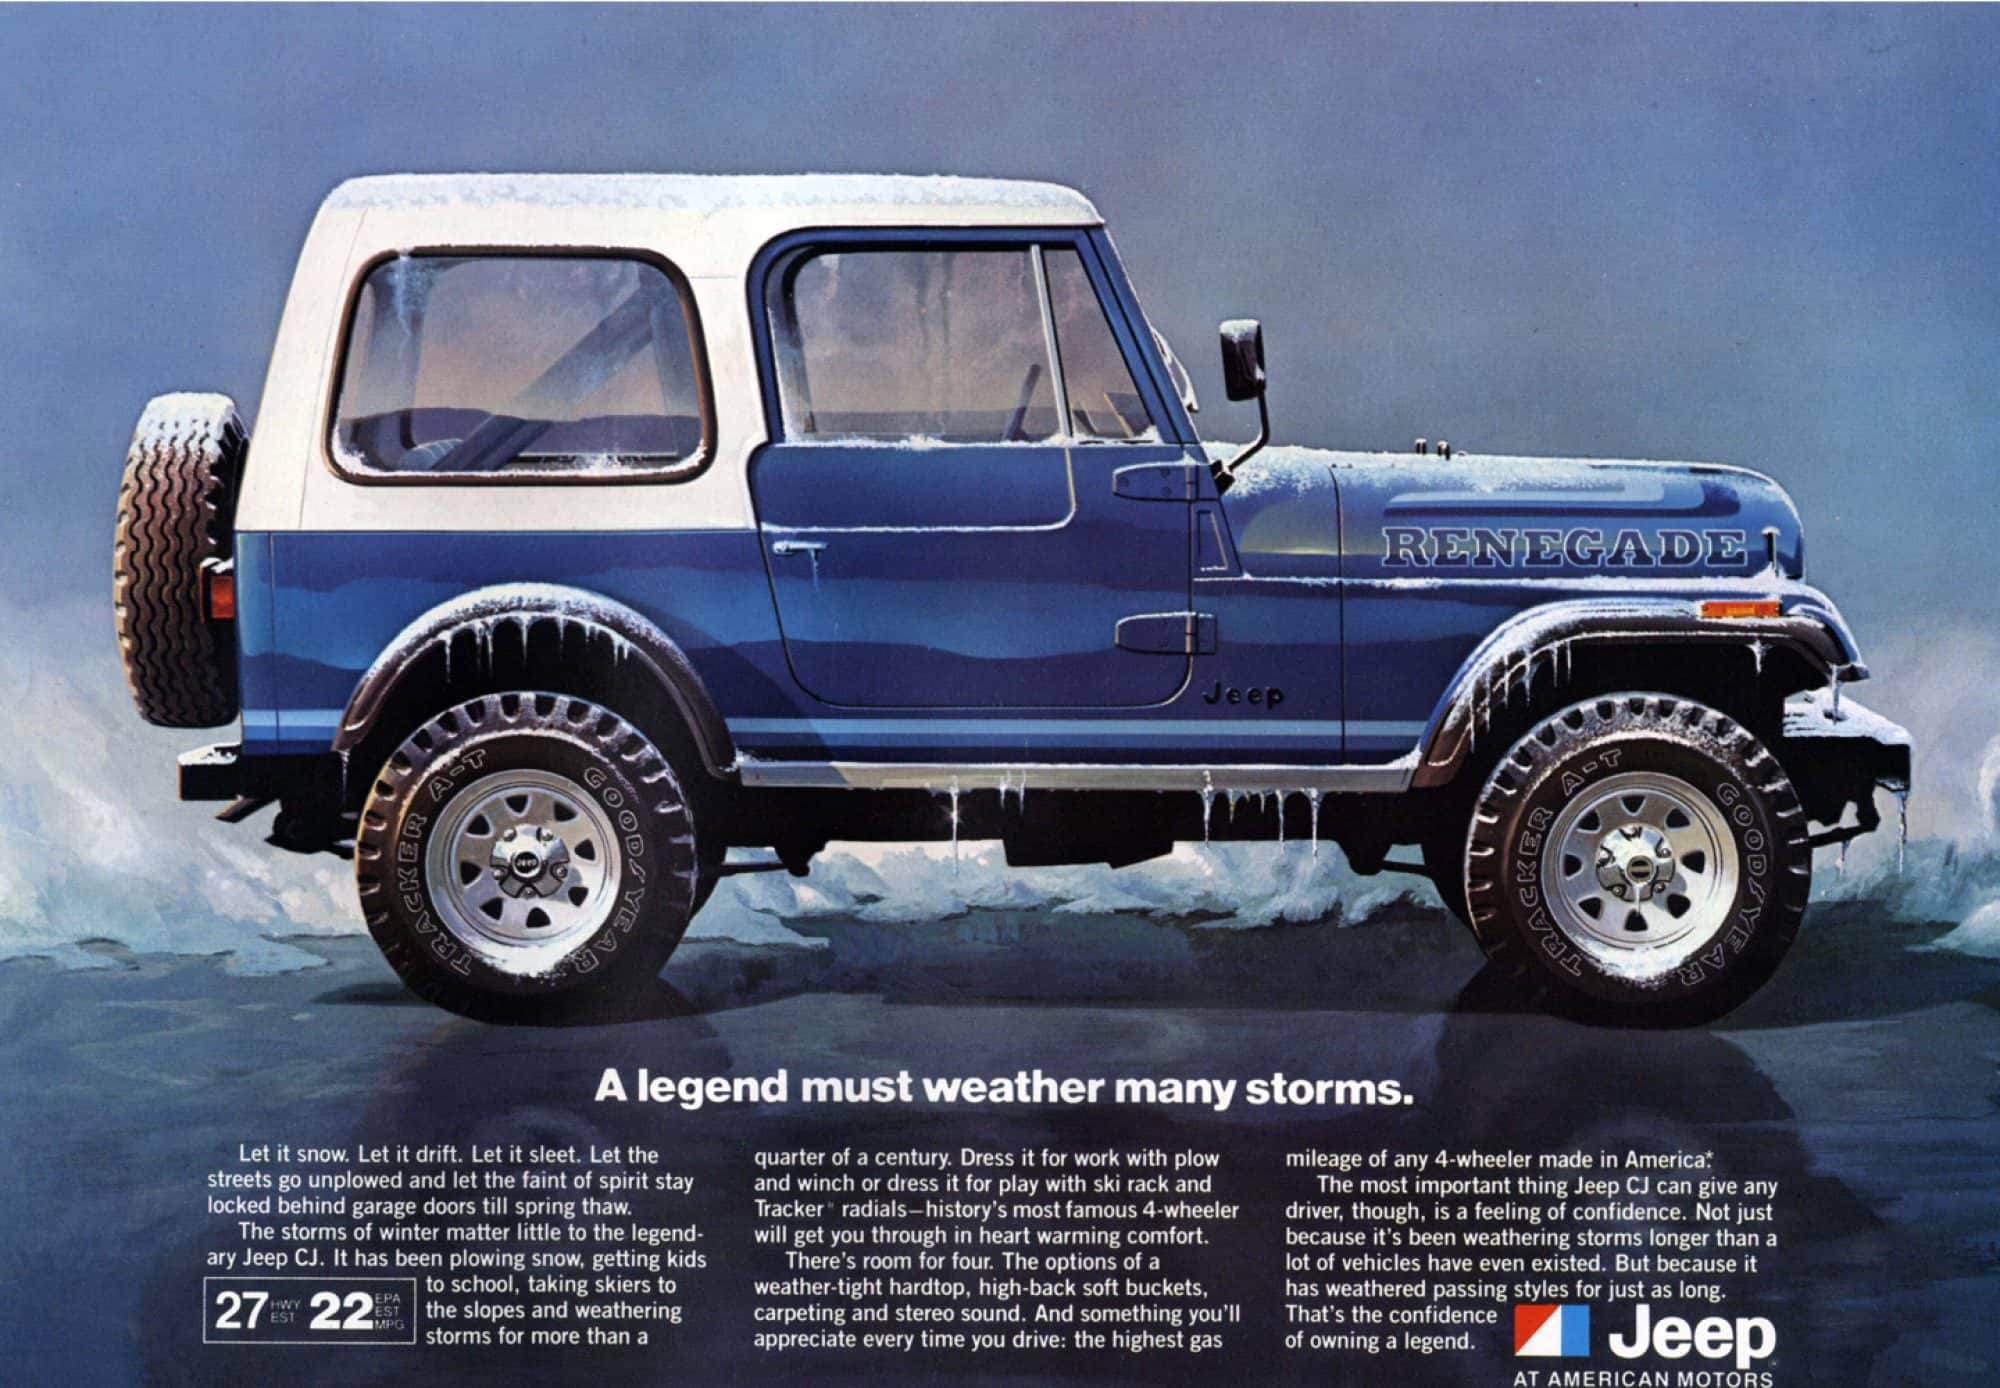 Used 1978 Jeep CJ-7 Renegade Available in Texas